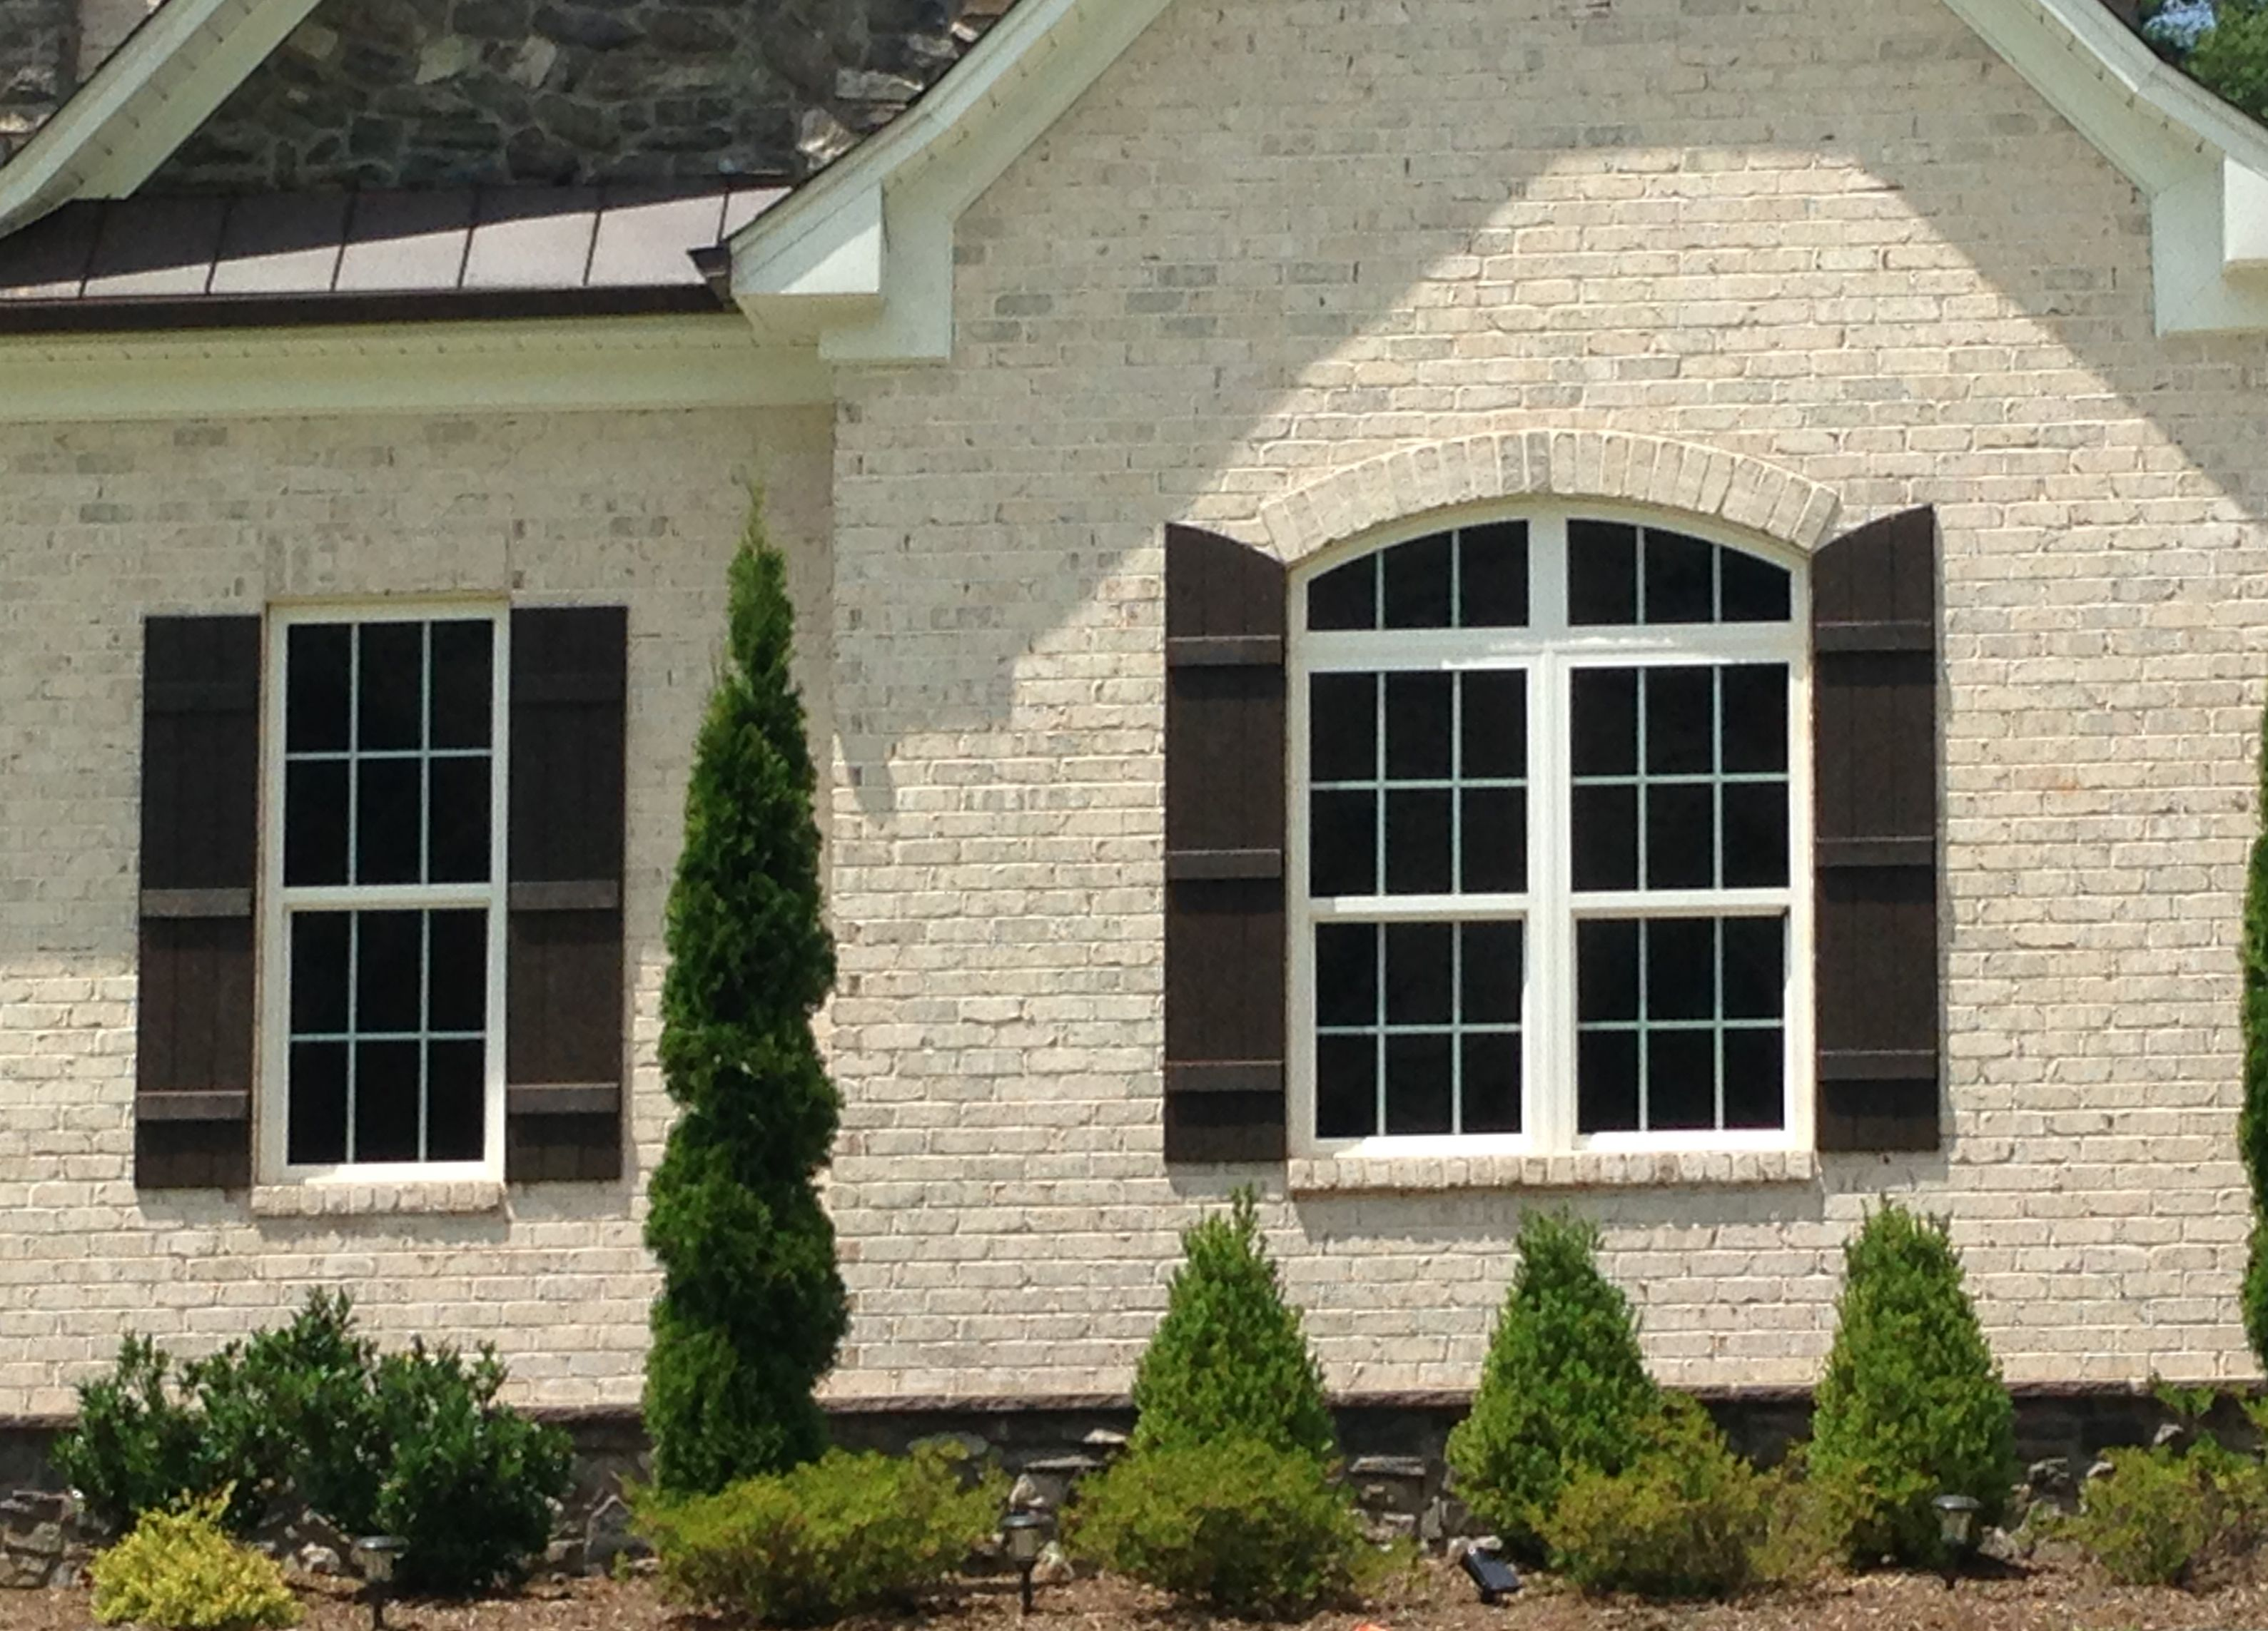 White Chesapeake Pearl Brick With White Mortar Looks Great With - Brick house colors with dark brown